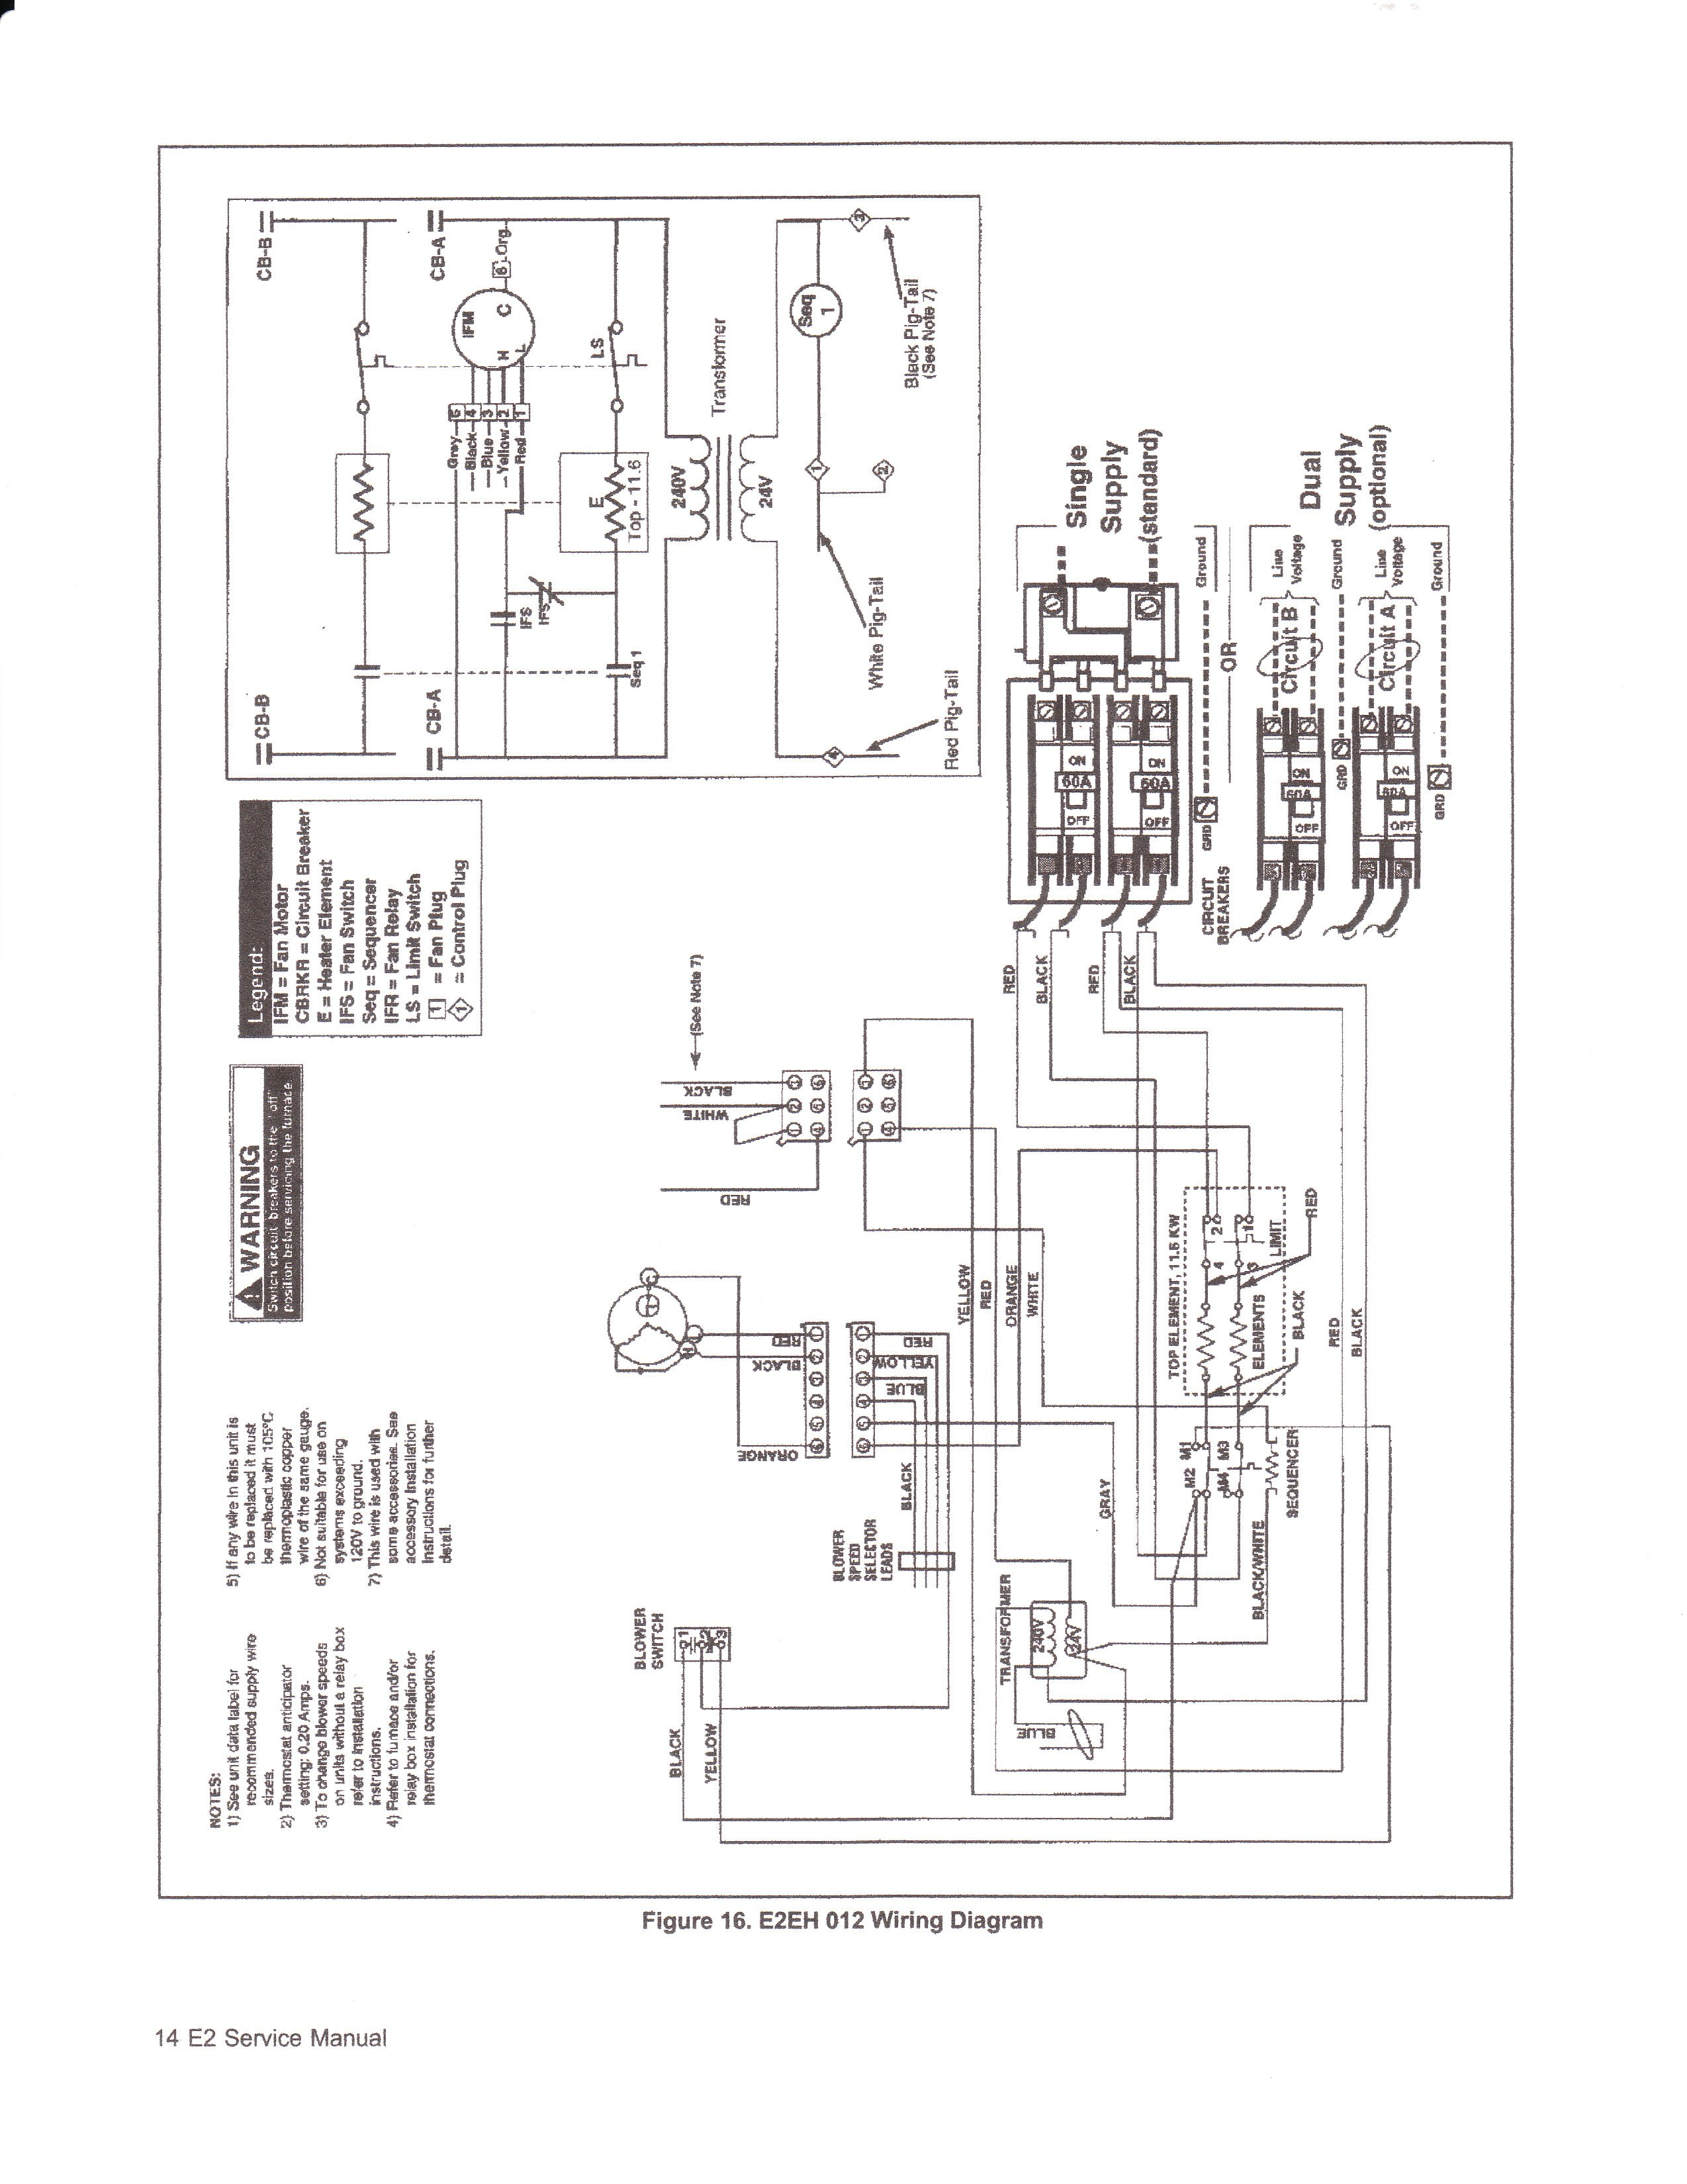 furnace blower wiring diagram heat strip intertherm wiring diagram heat intertherm electric furnace e2eb-012ha runs briefly,shuts ...